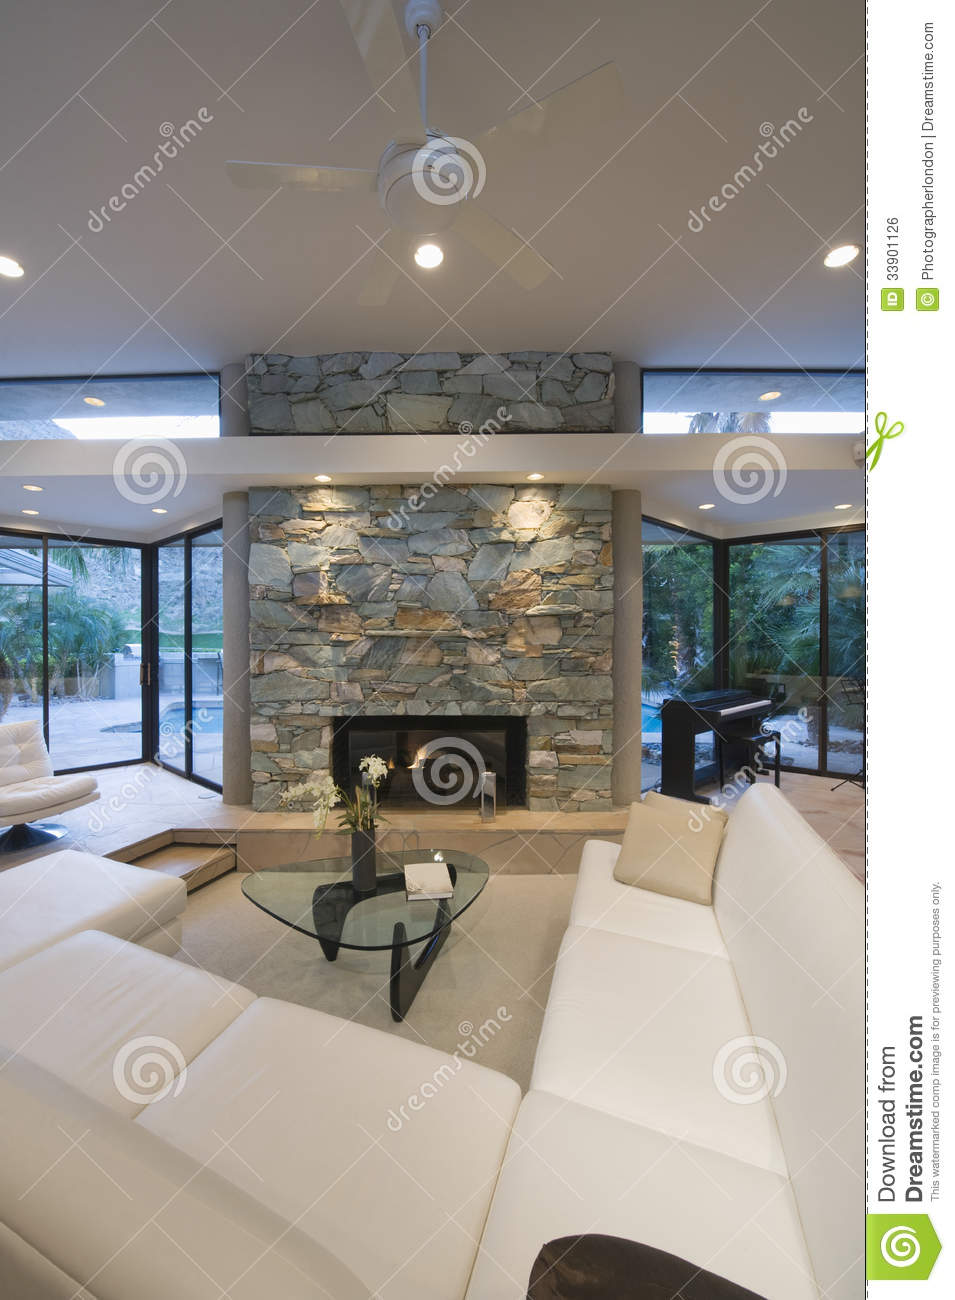 Seating Area And Stone Fireplace Royalty Free Stock Image